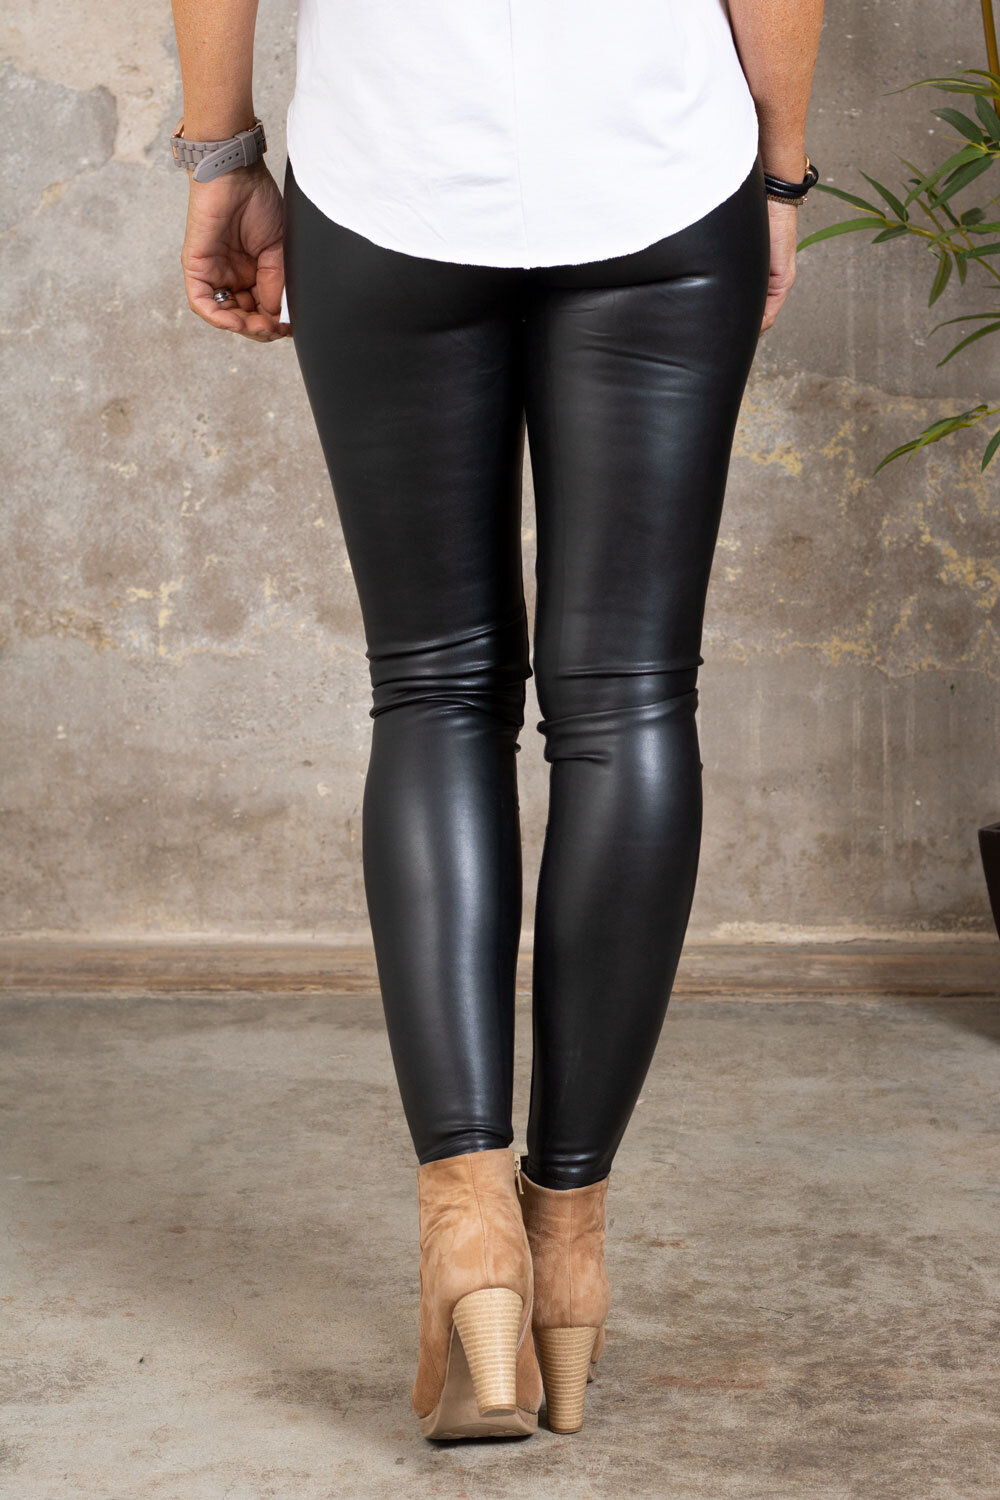 Leggings i imitert skinn - VS18001 - Svart